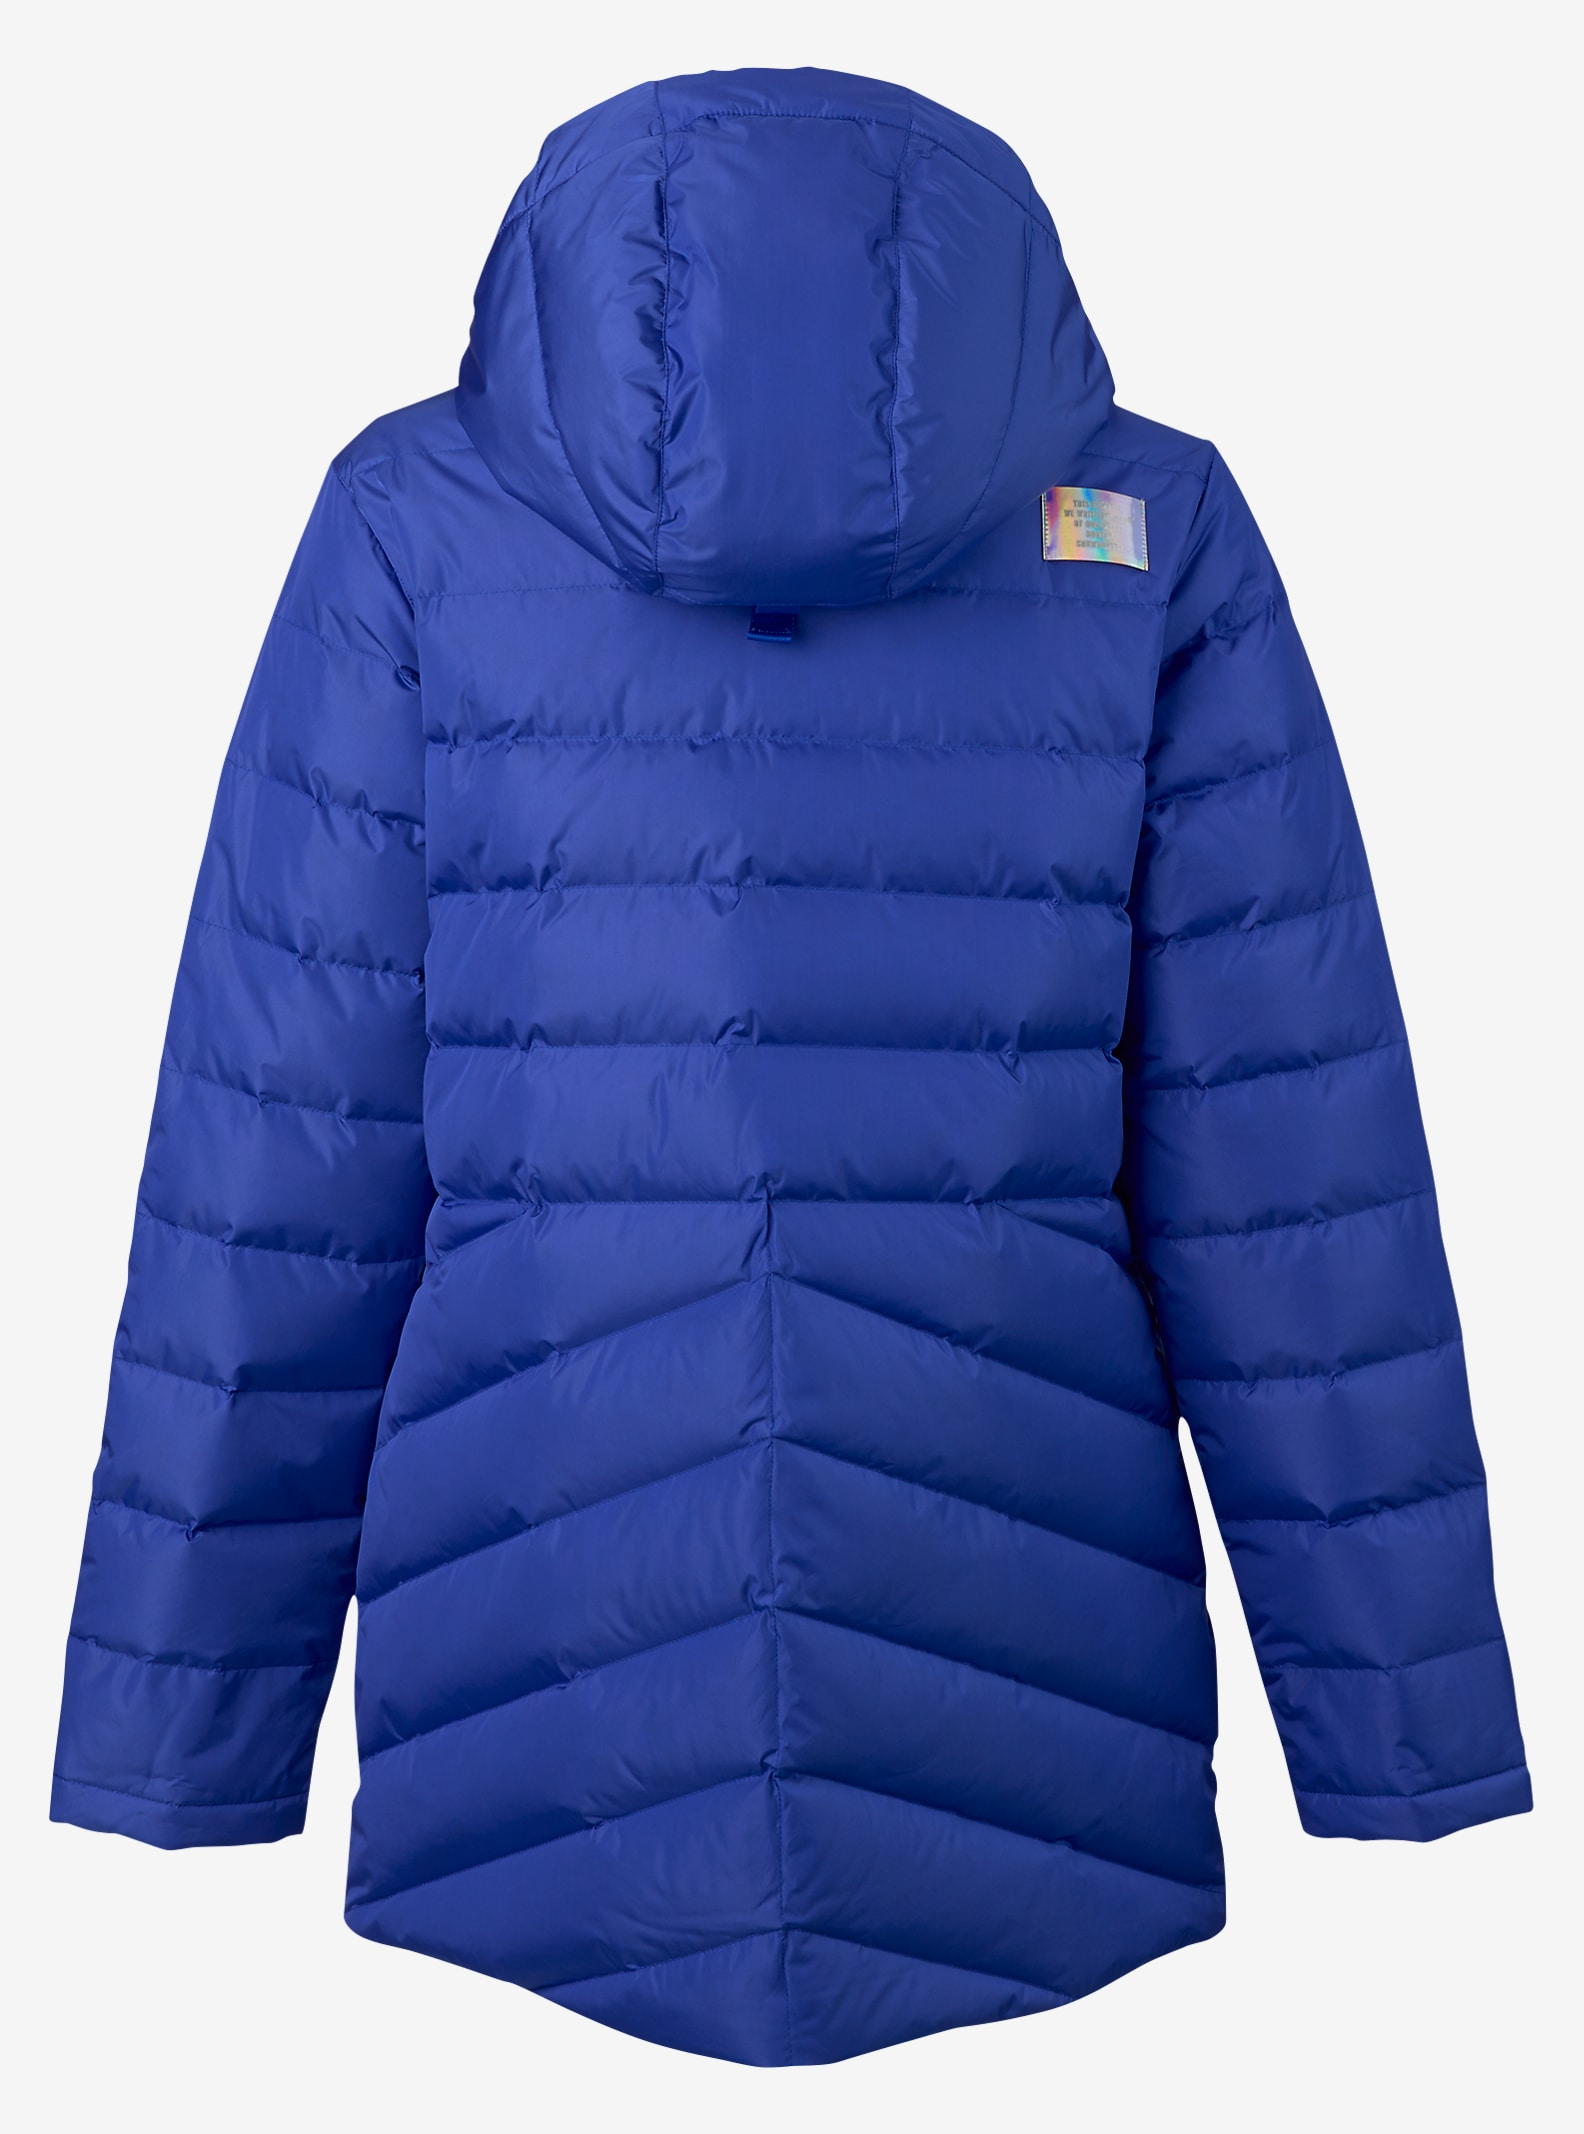 Burton Sphinx Down Jacket shown in Scuba